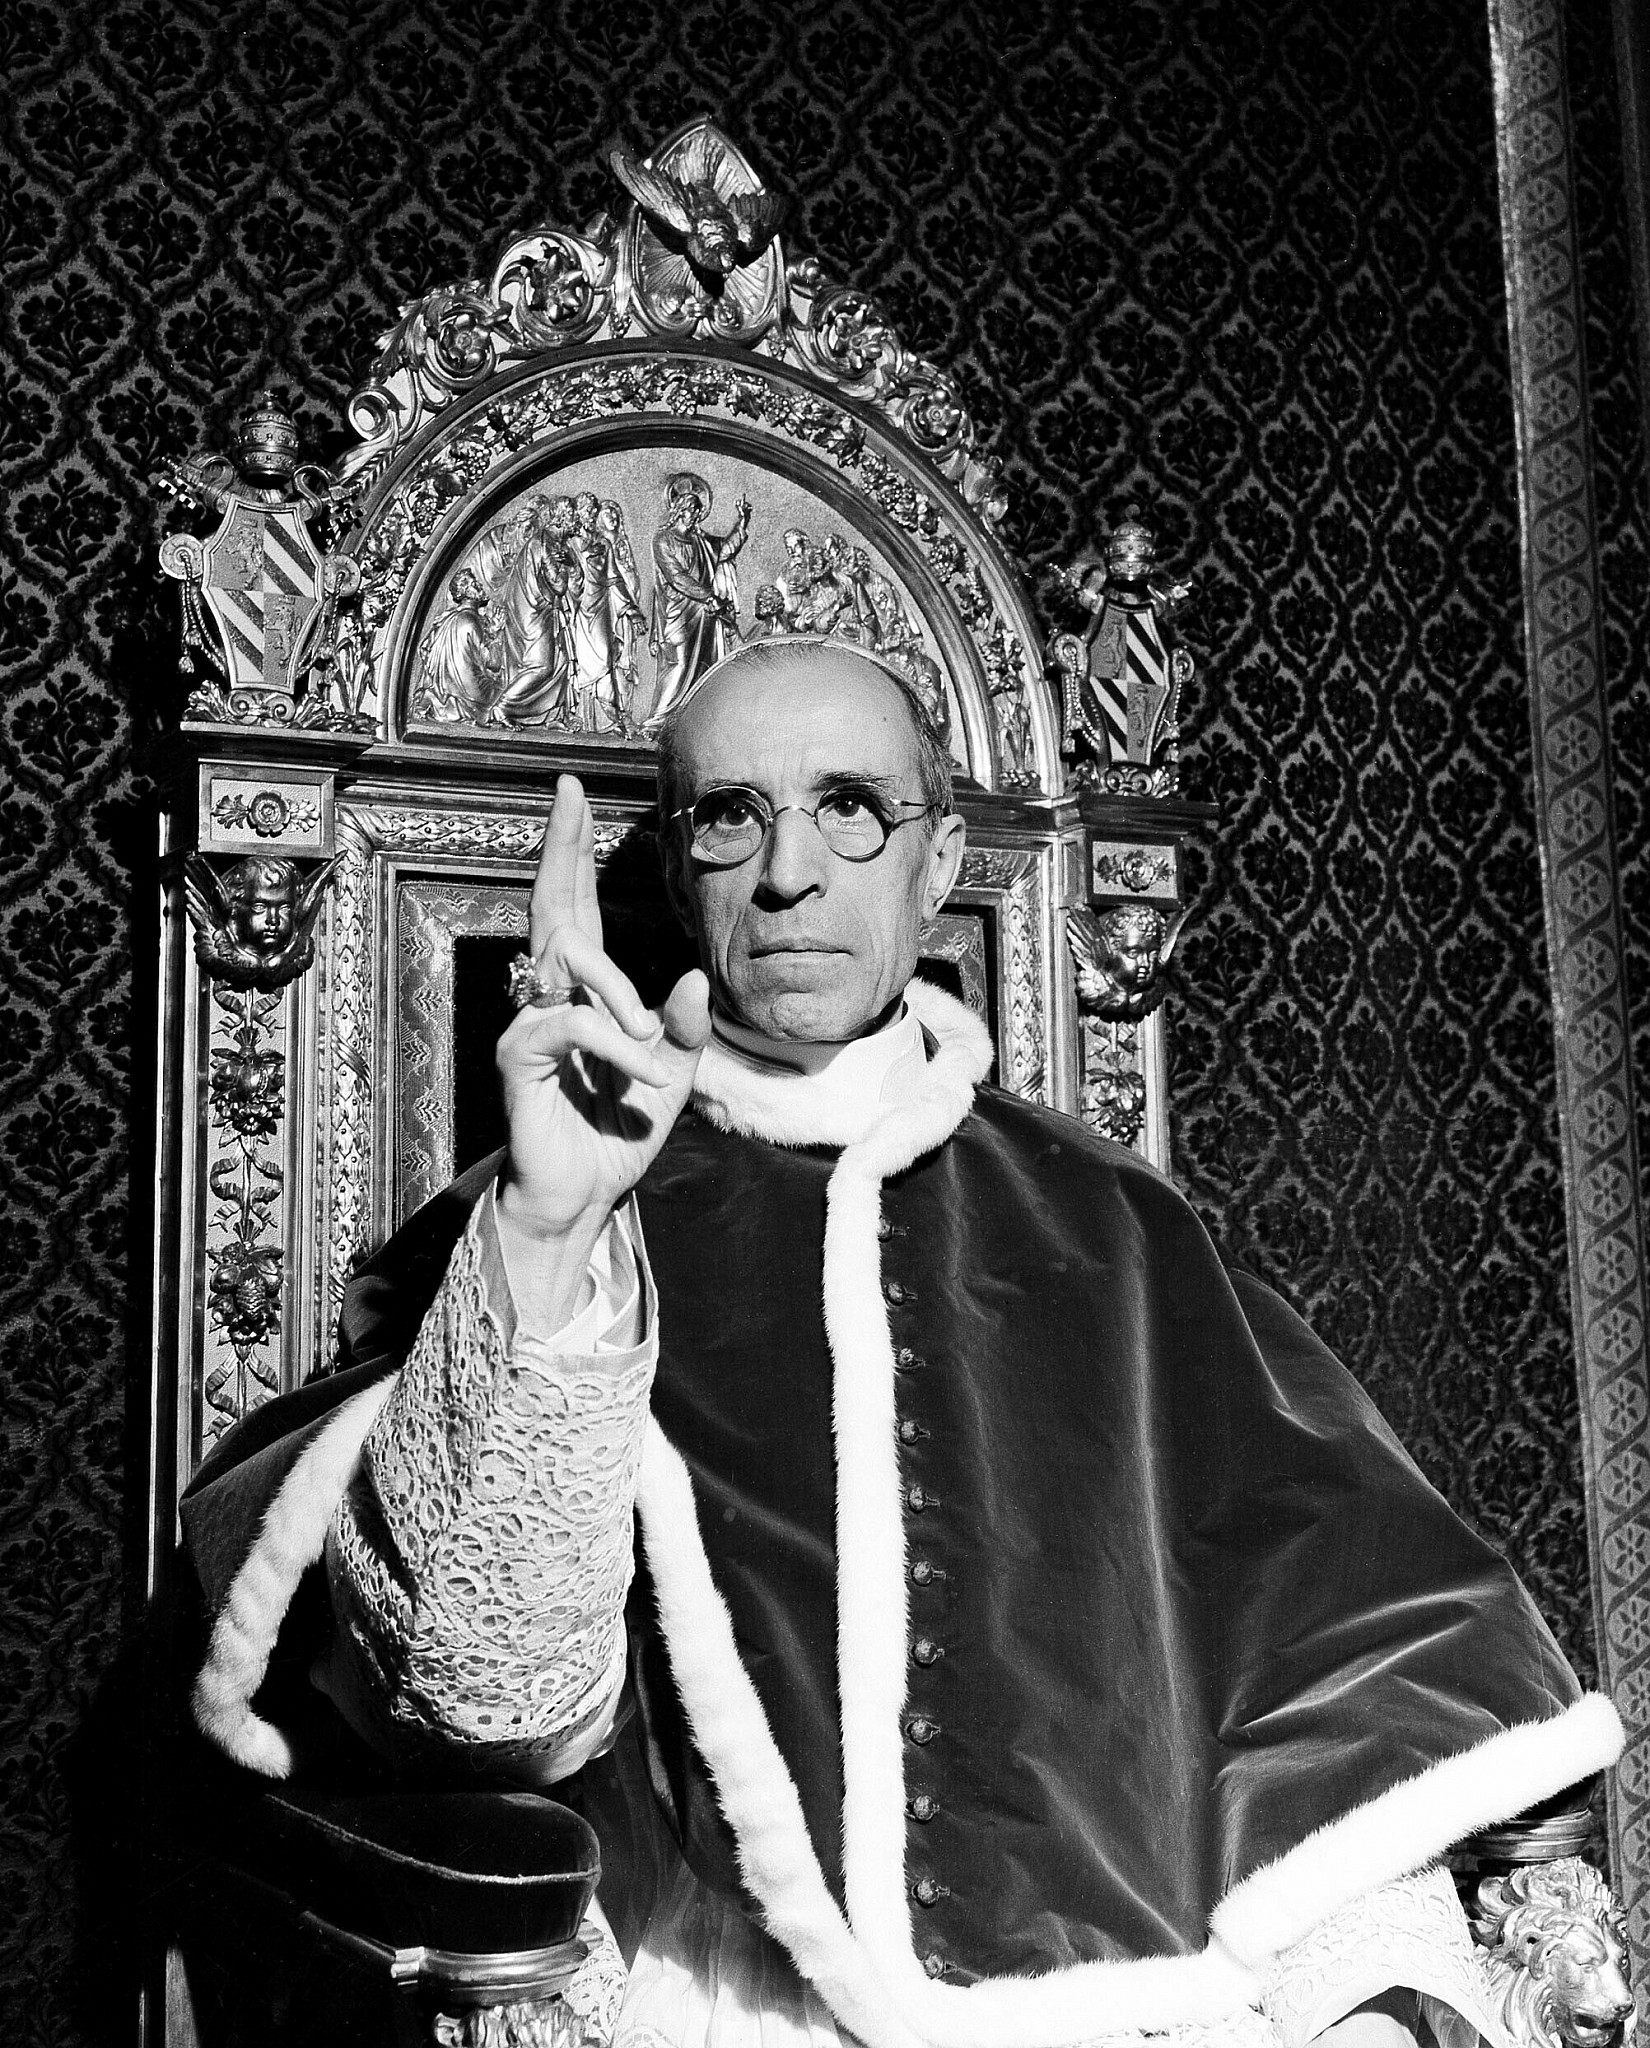 Vatican to open secret archives of wartime Pope Pius XII